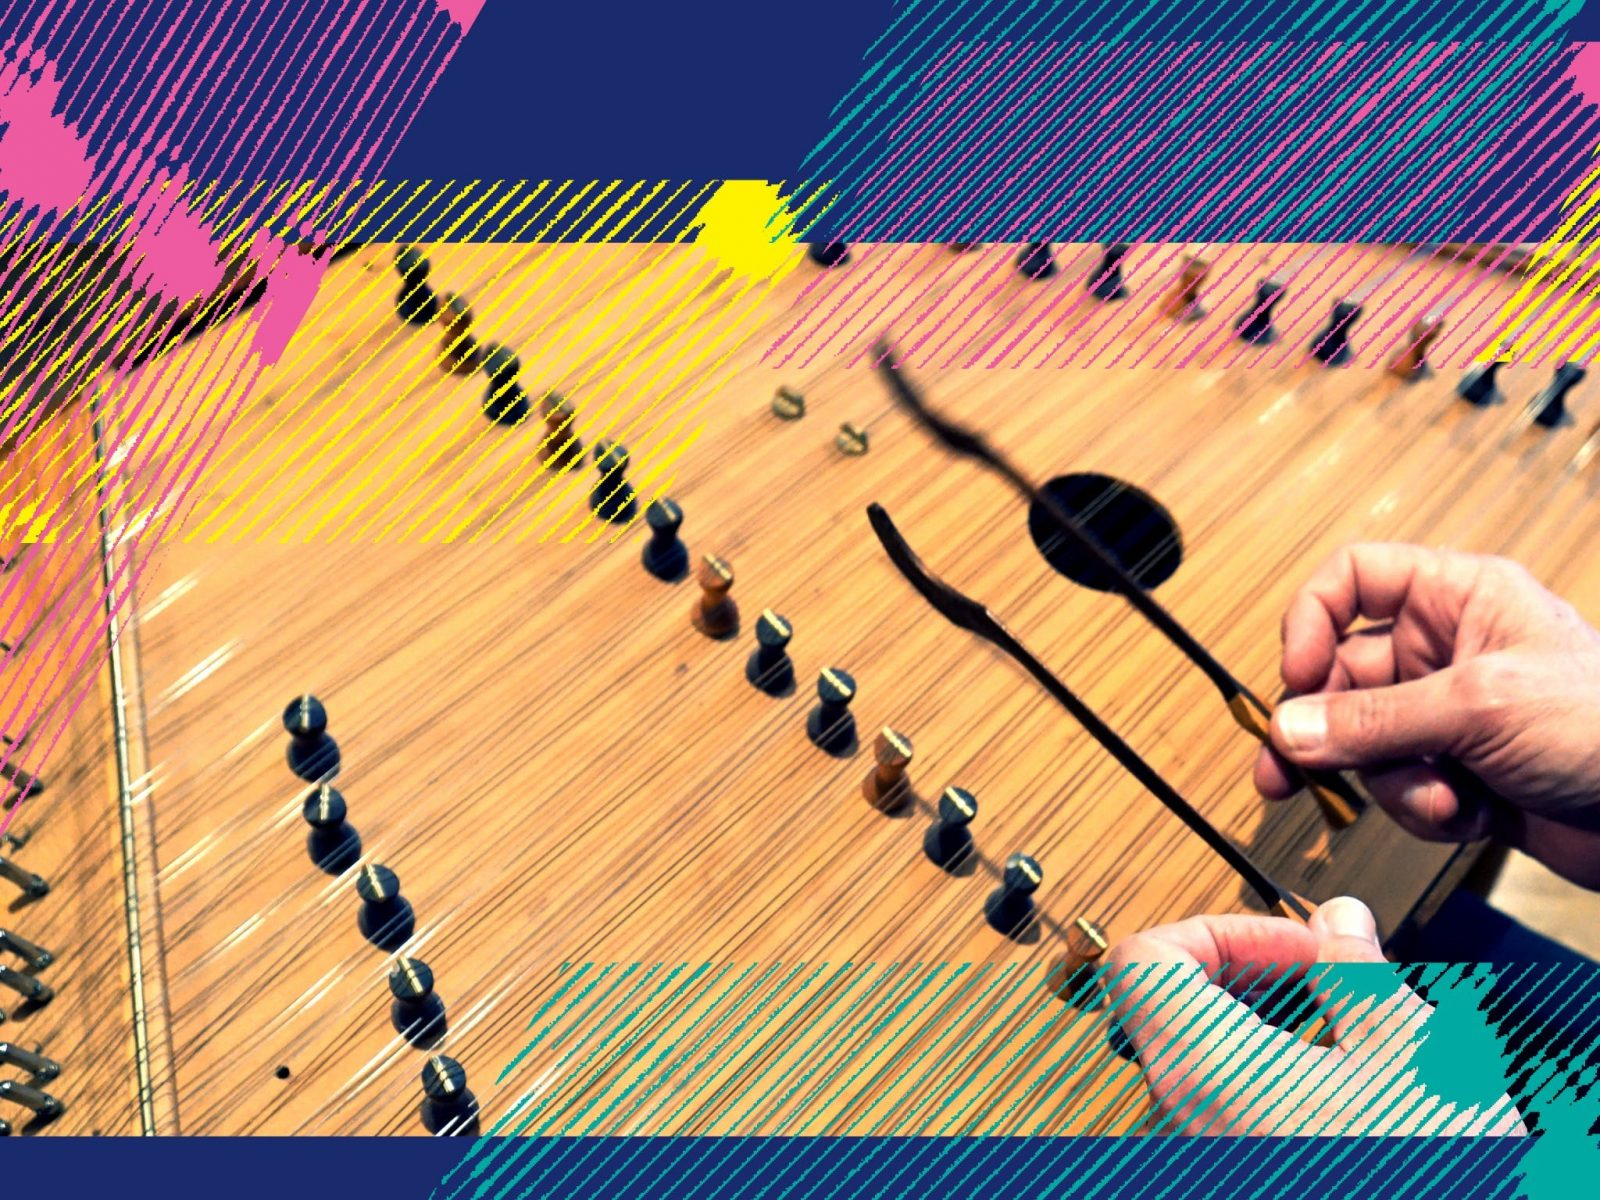 A hammered dulcimer, the instrument featured in this concert!